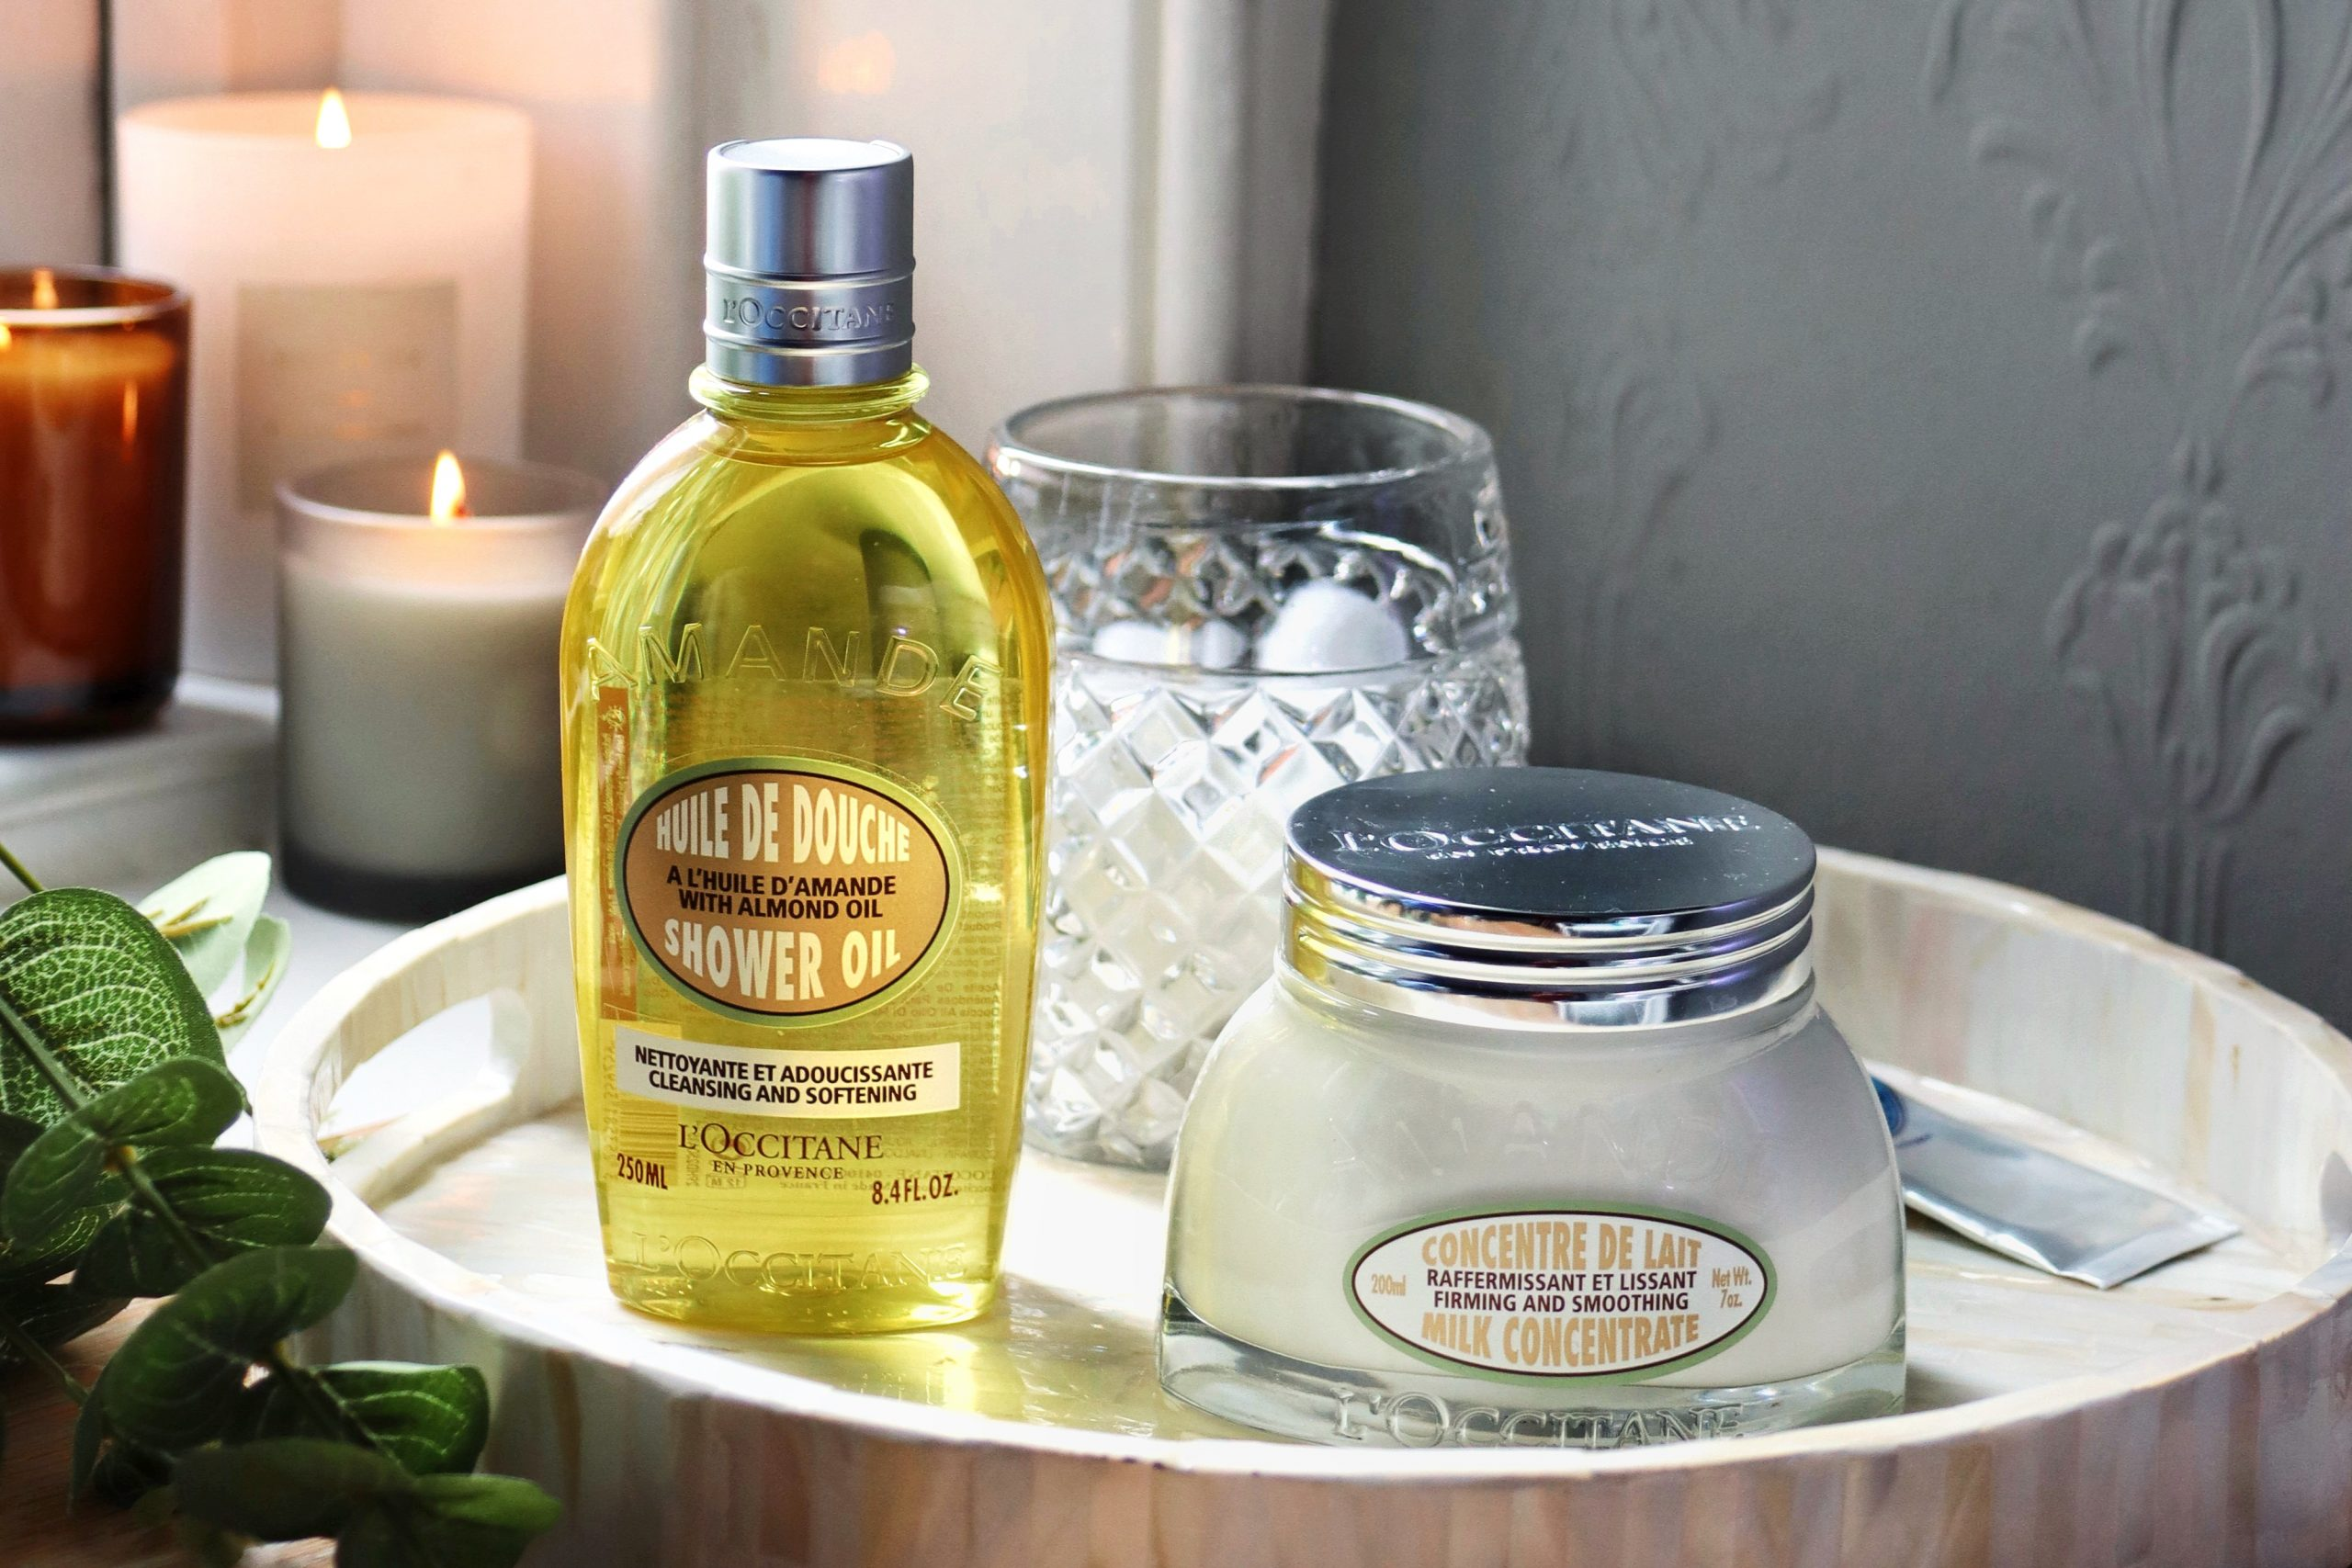 L'occitane Almond Milk Concentrate and Almond Shower Gel French Skincare